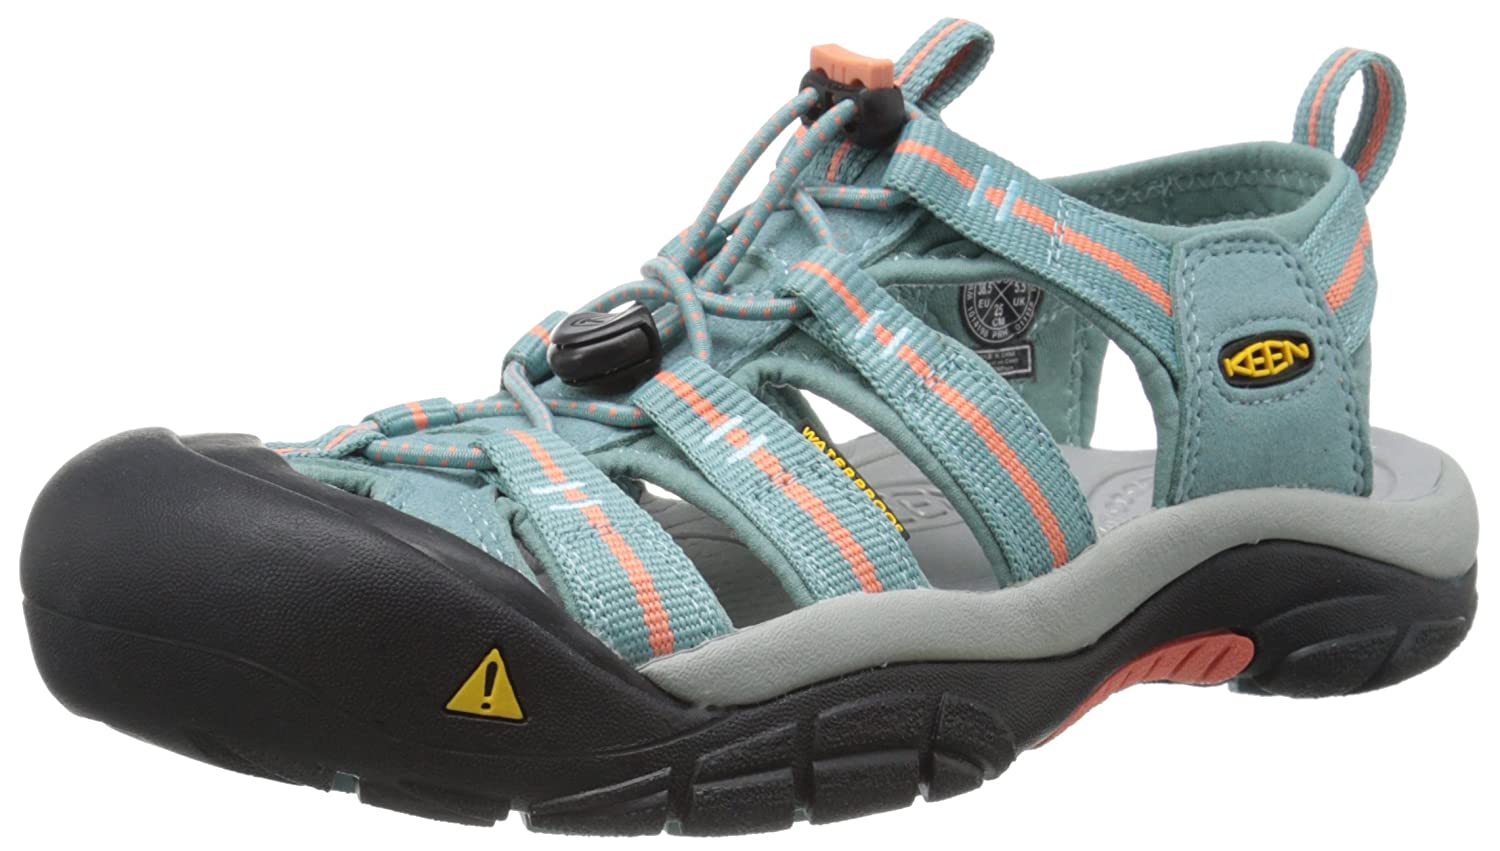 Mineral bluee Fusion Coral KEEN Women's Newport H2 Sandals